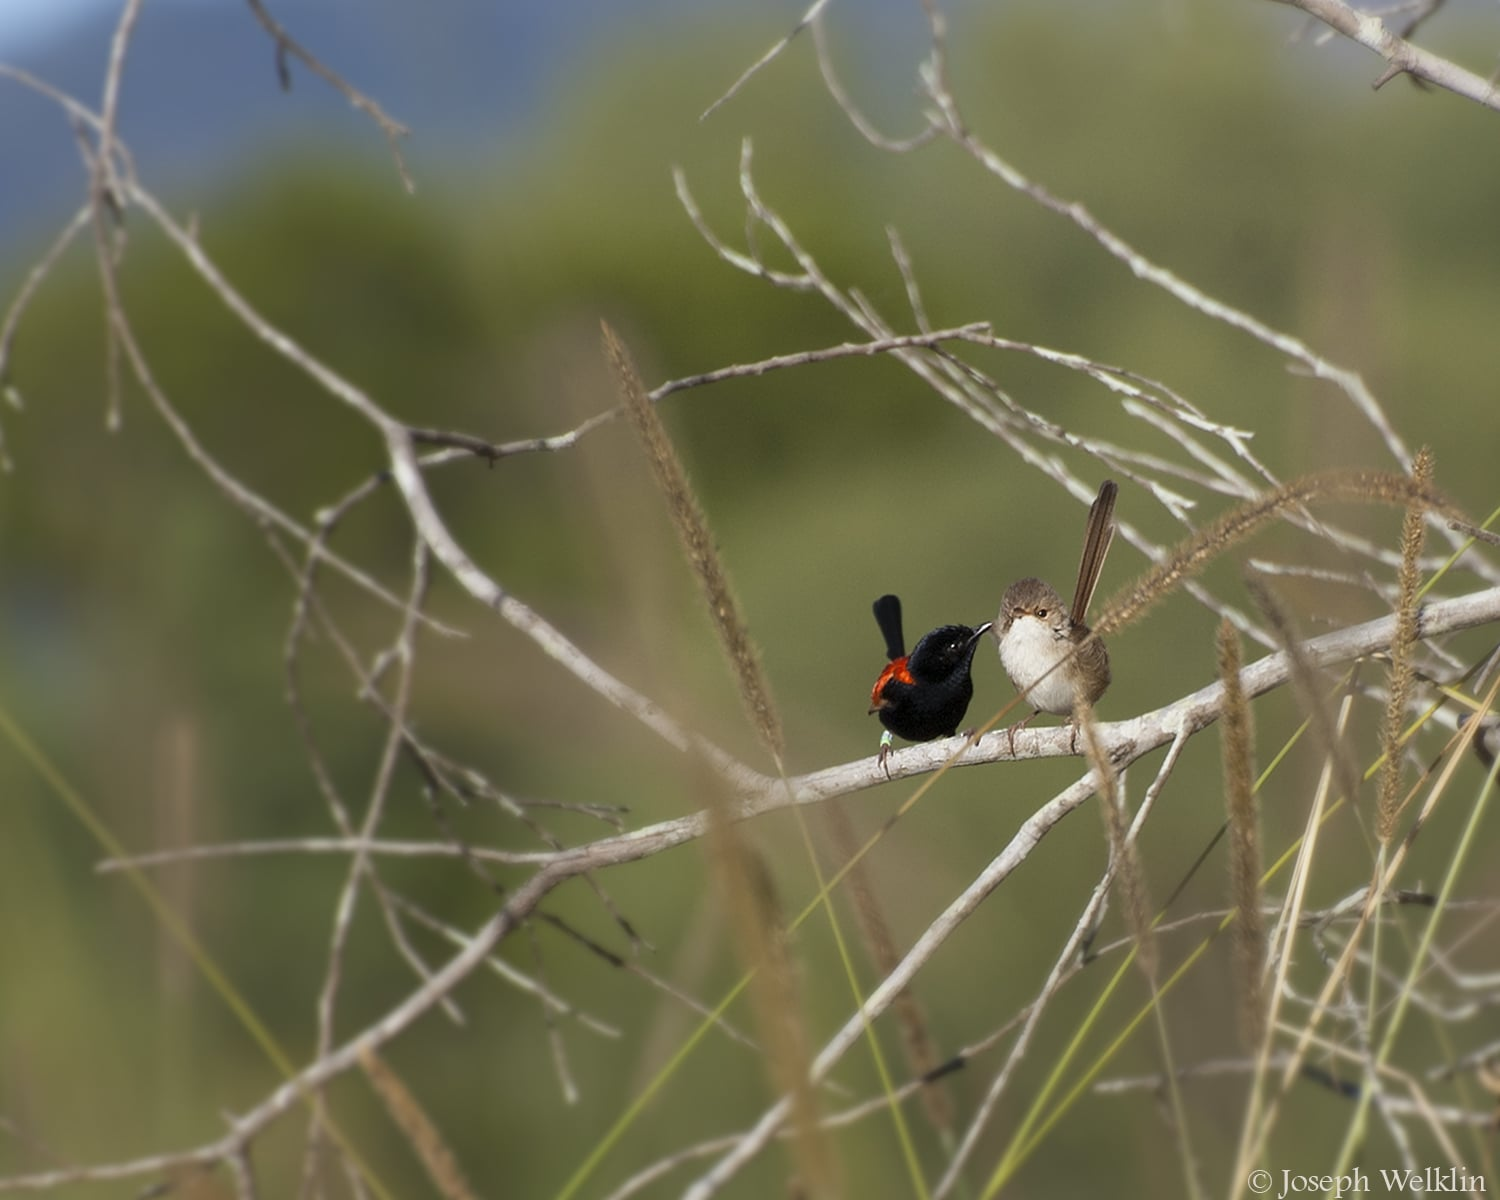 A male Red-backed Fairy-wren grooms his mate. Photographed in Queensland, Australia.